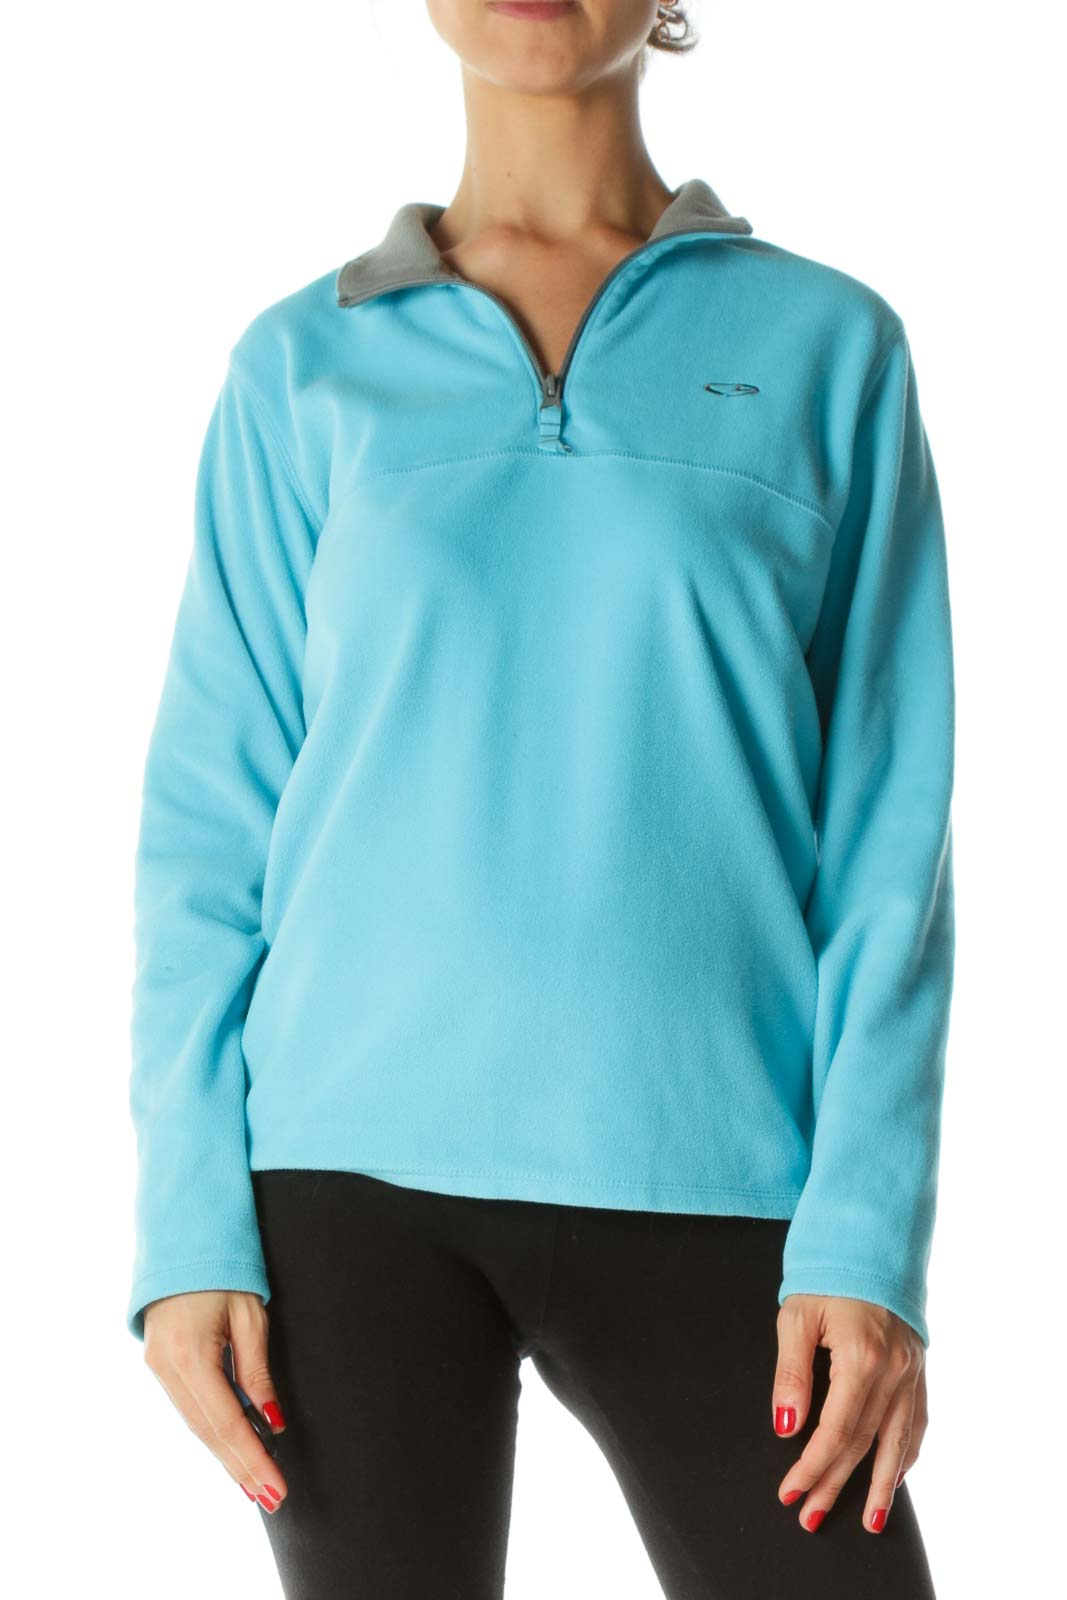 Black Gray Half-Zipper Active Fleece Jacket Front